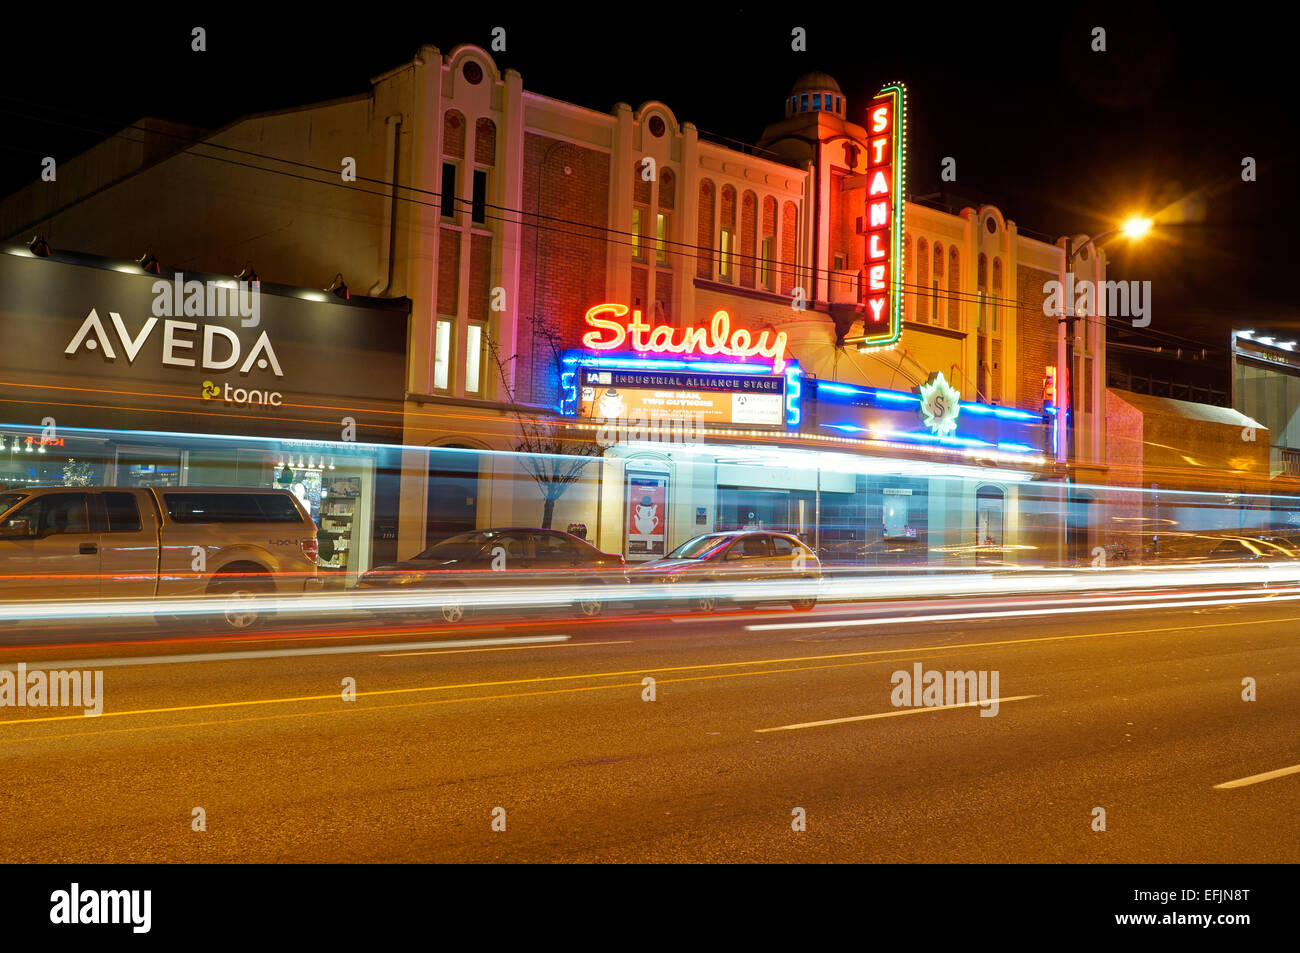 The Stanley Theatre on South Granville Street at night, Vancouver, BC, Canada - Stock Image